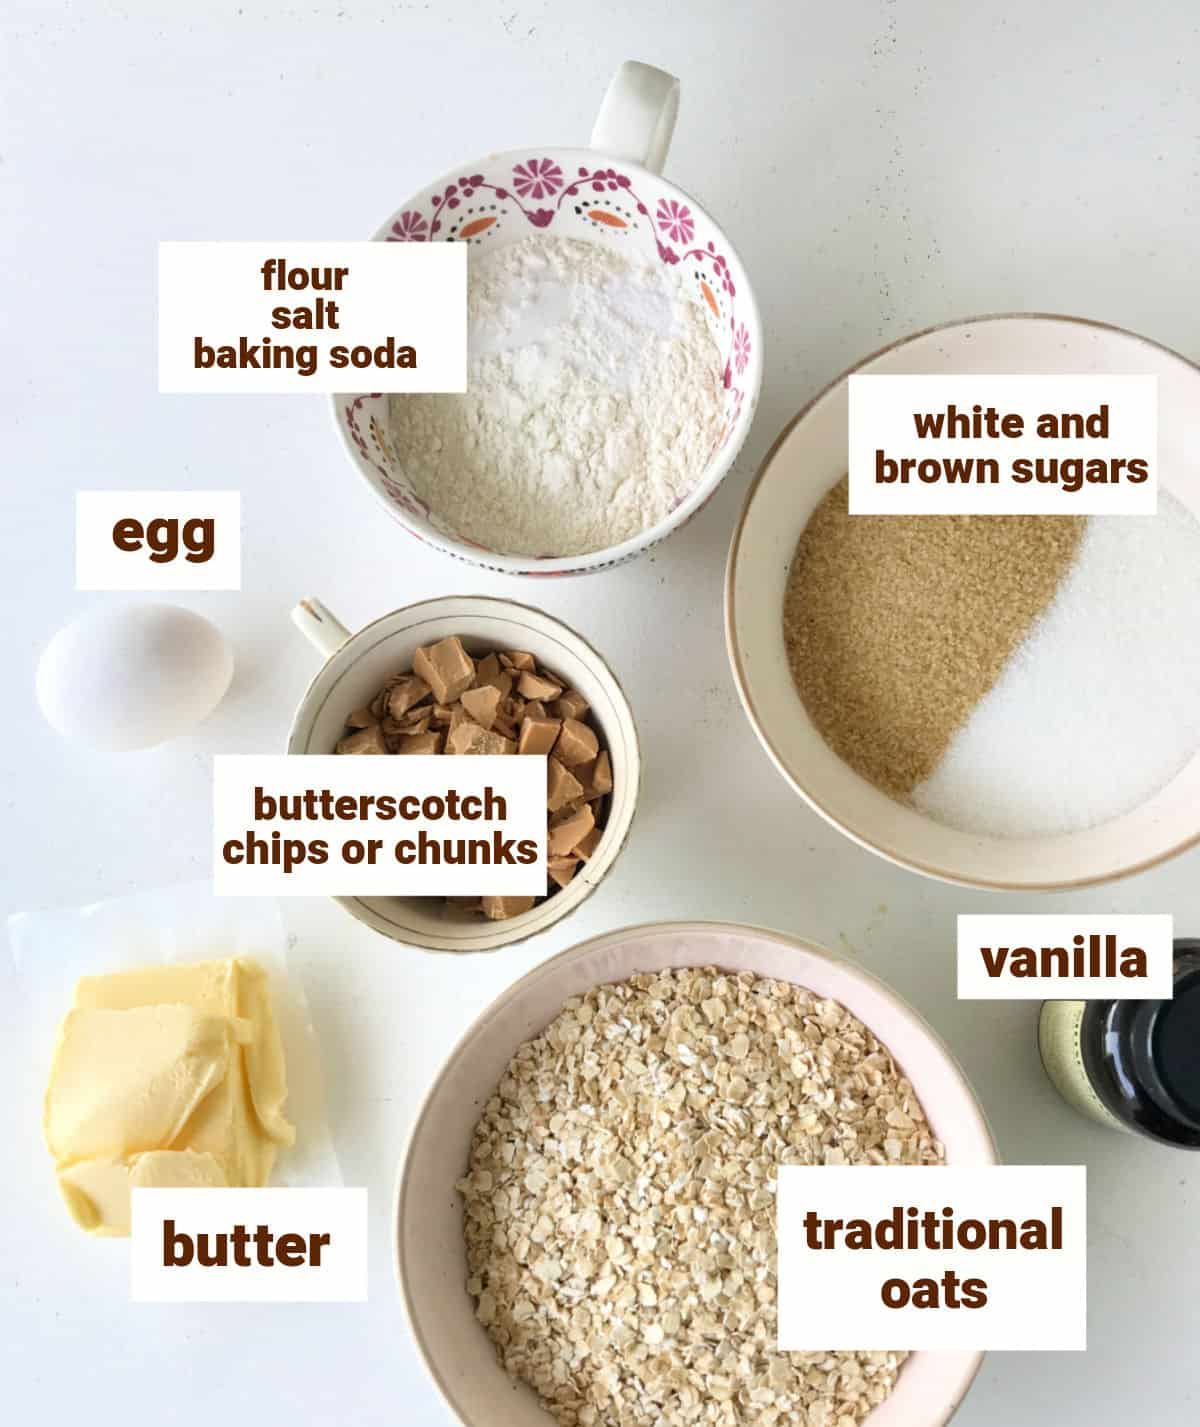 Different bowls with ingredients for oatmeal butterscotch chip cookies on white surface